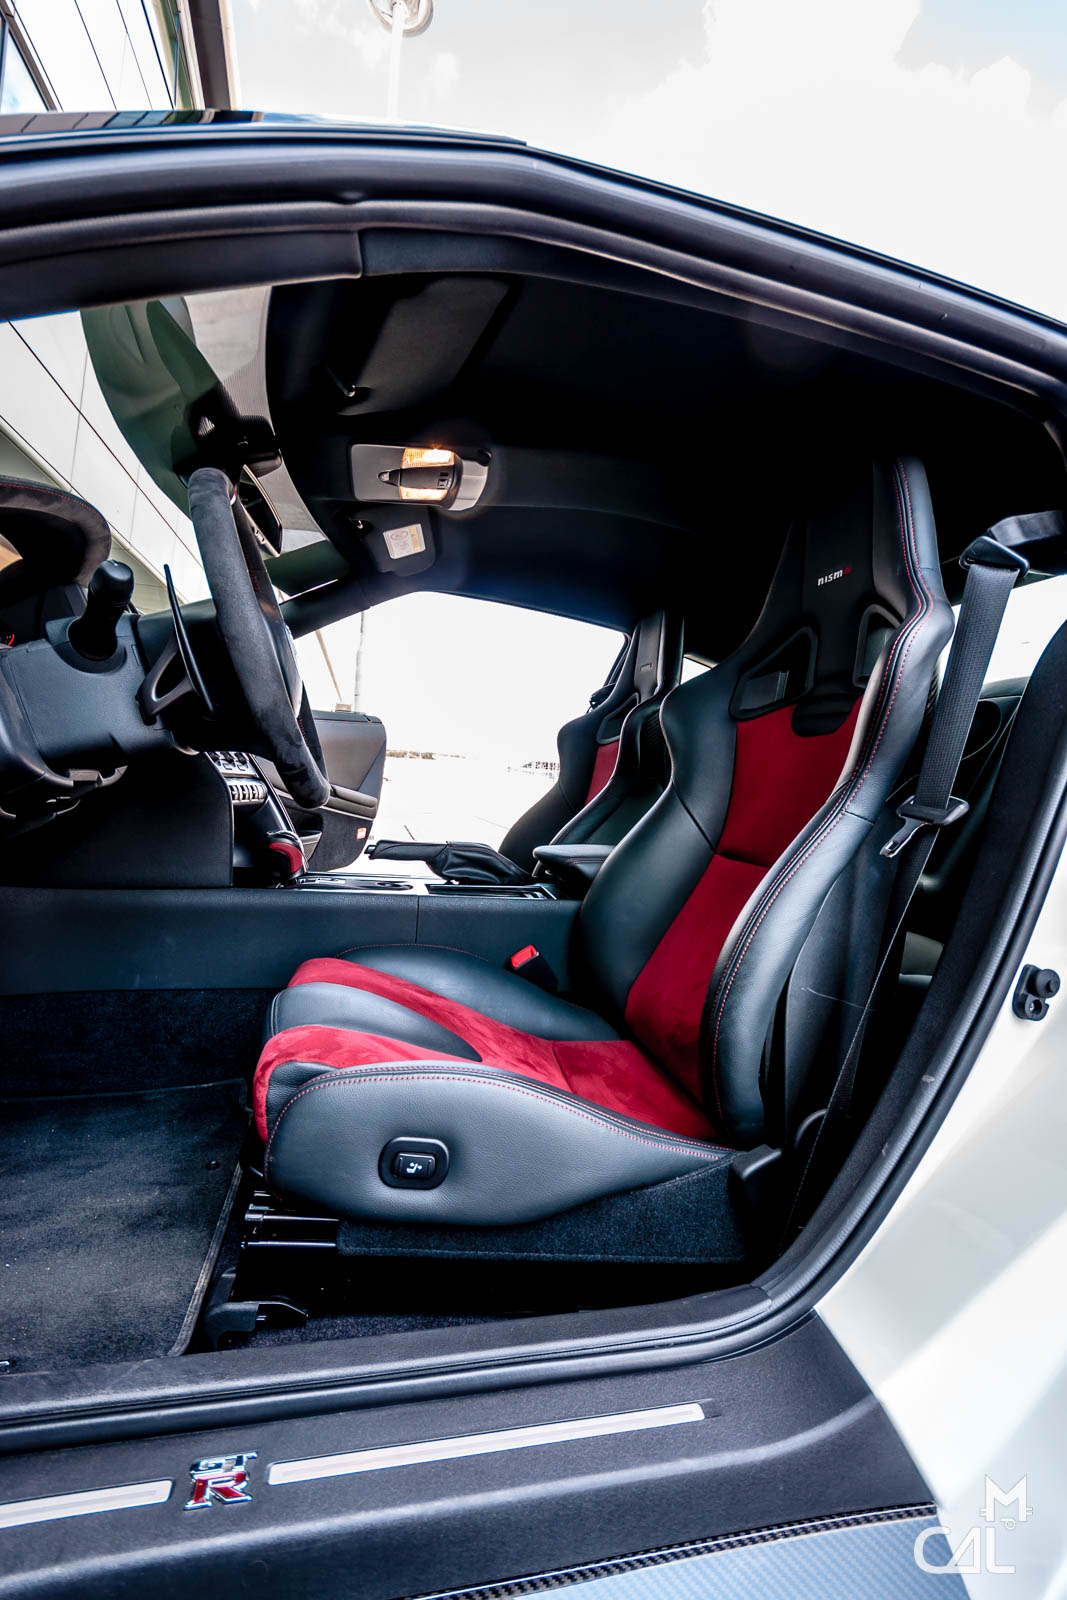 nissan gt r nismo int rieur et ses somptueux baquets carbone mon chat aime la photo. Black Bedroom Furniture Sets. Home Design Ideas